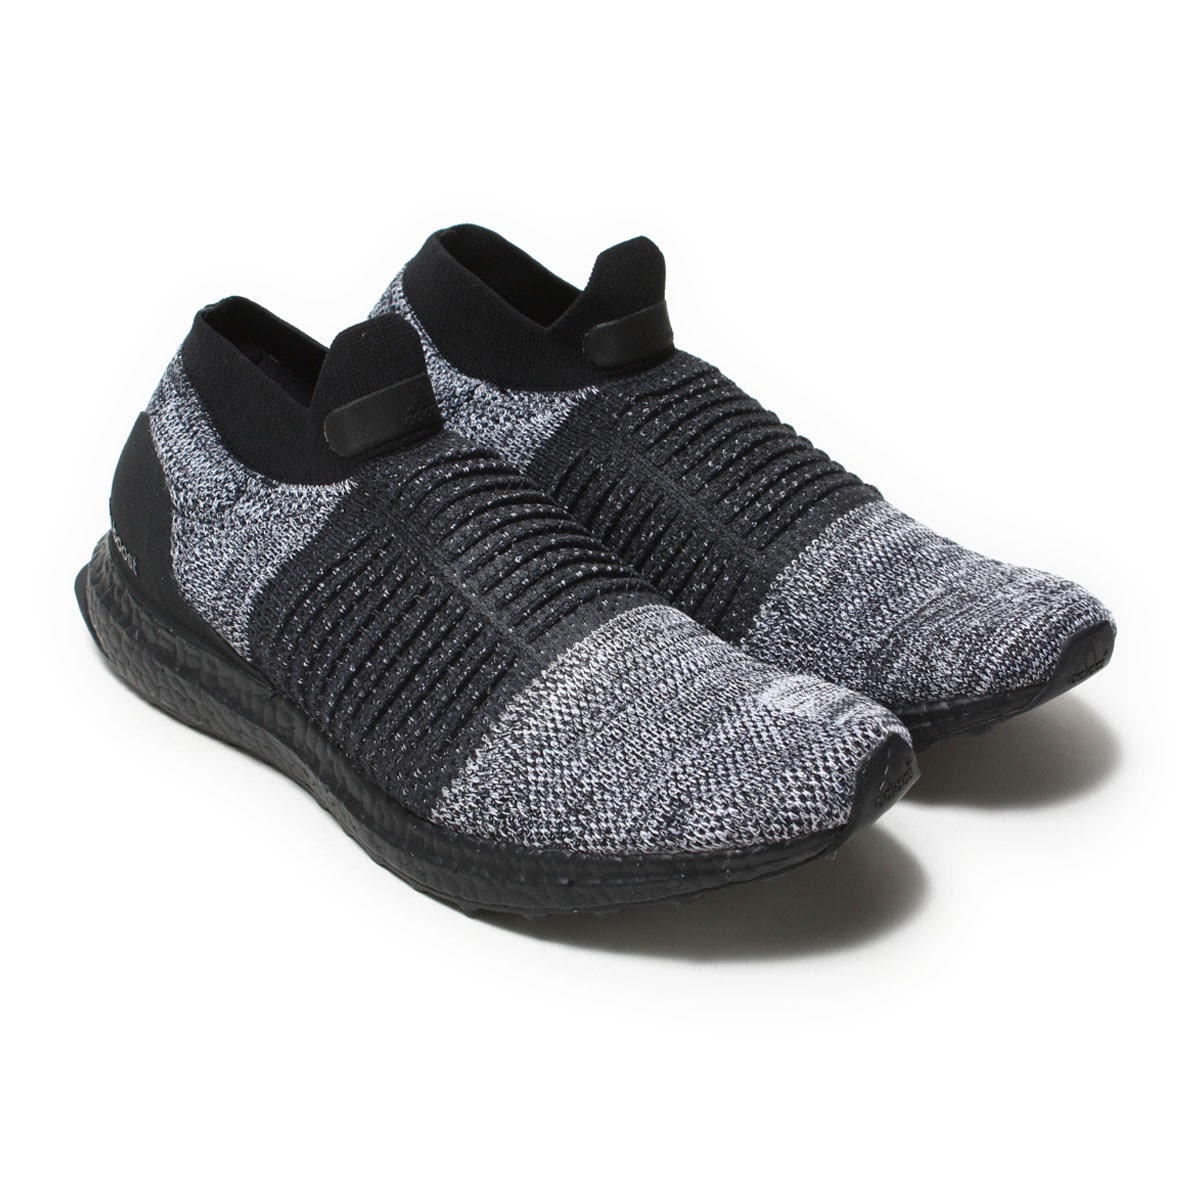 e645e10e0 Shoes overturning the common sense of running shoes debut by slip-ons type.  Hold changing tension of how to knit using prime knit having 4way stretch  ...